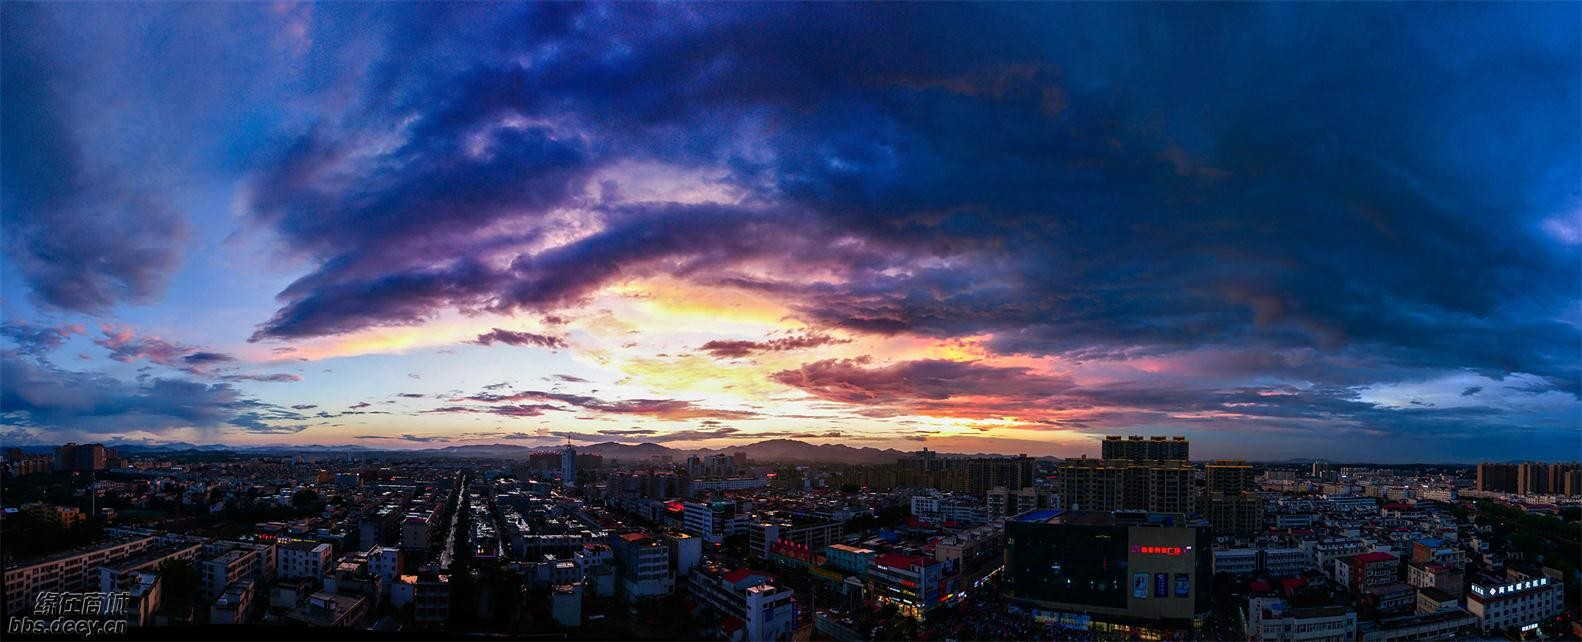 [Group 1]-DSC_0118_DSC_0126-9 images.jpg